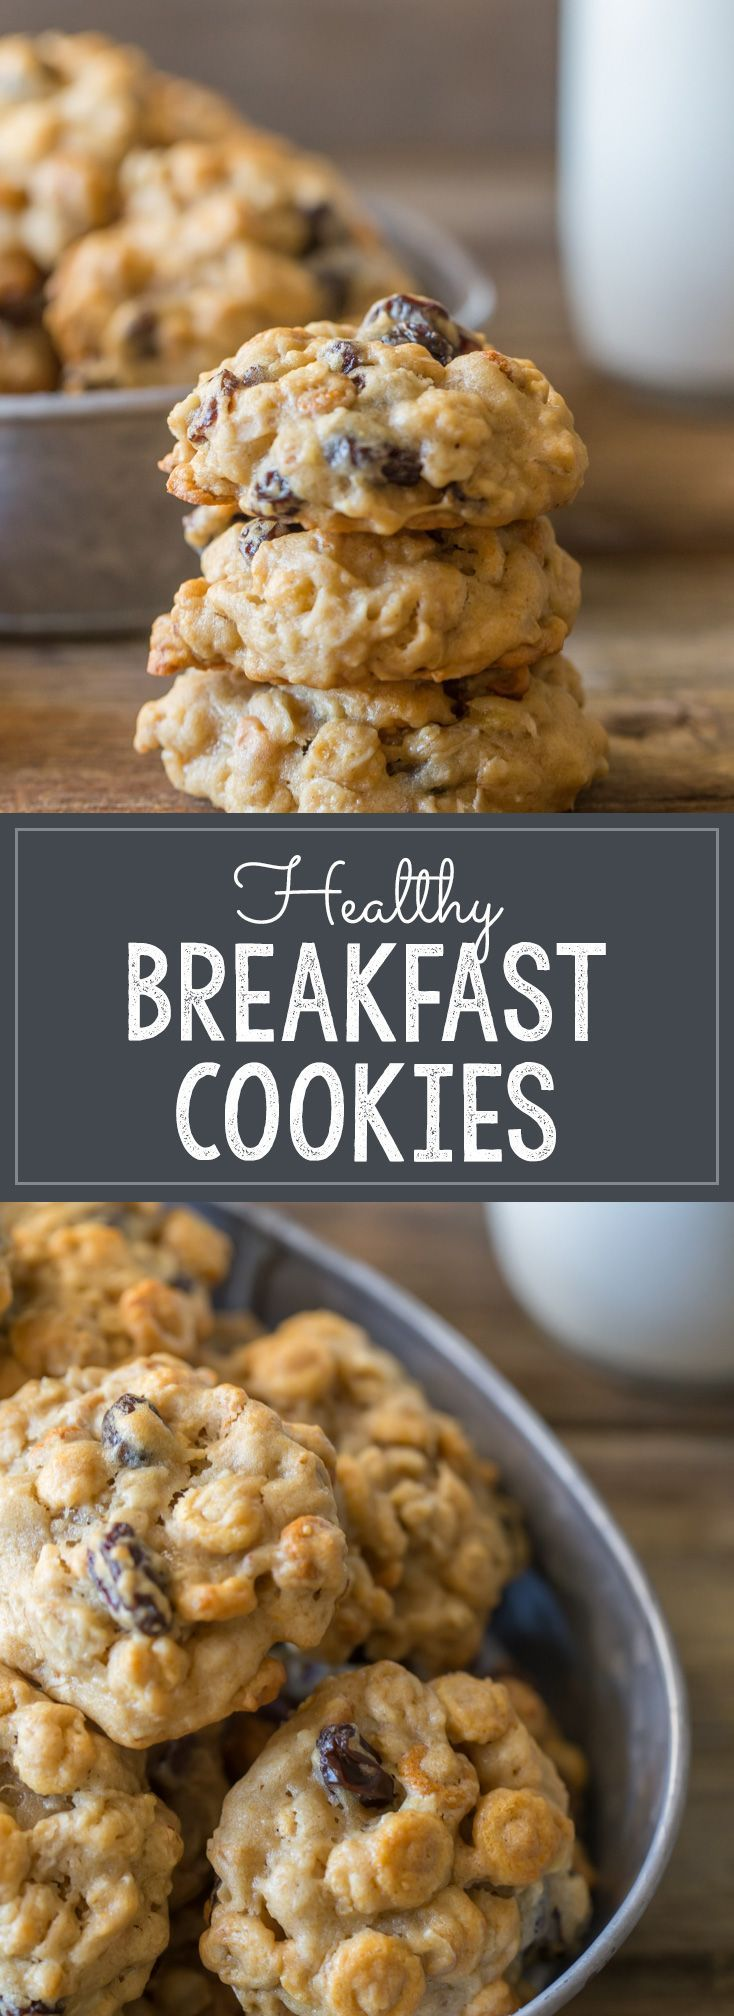 With no refined sugar, and healthy stuff like white whole wheat flour, oats, and peanut butter, these cookies are perfect for an easy breakfast on-the-go!